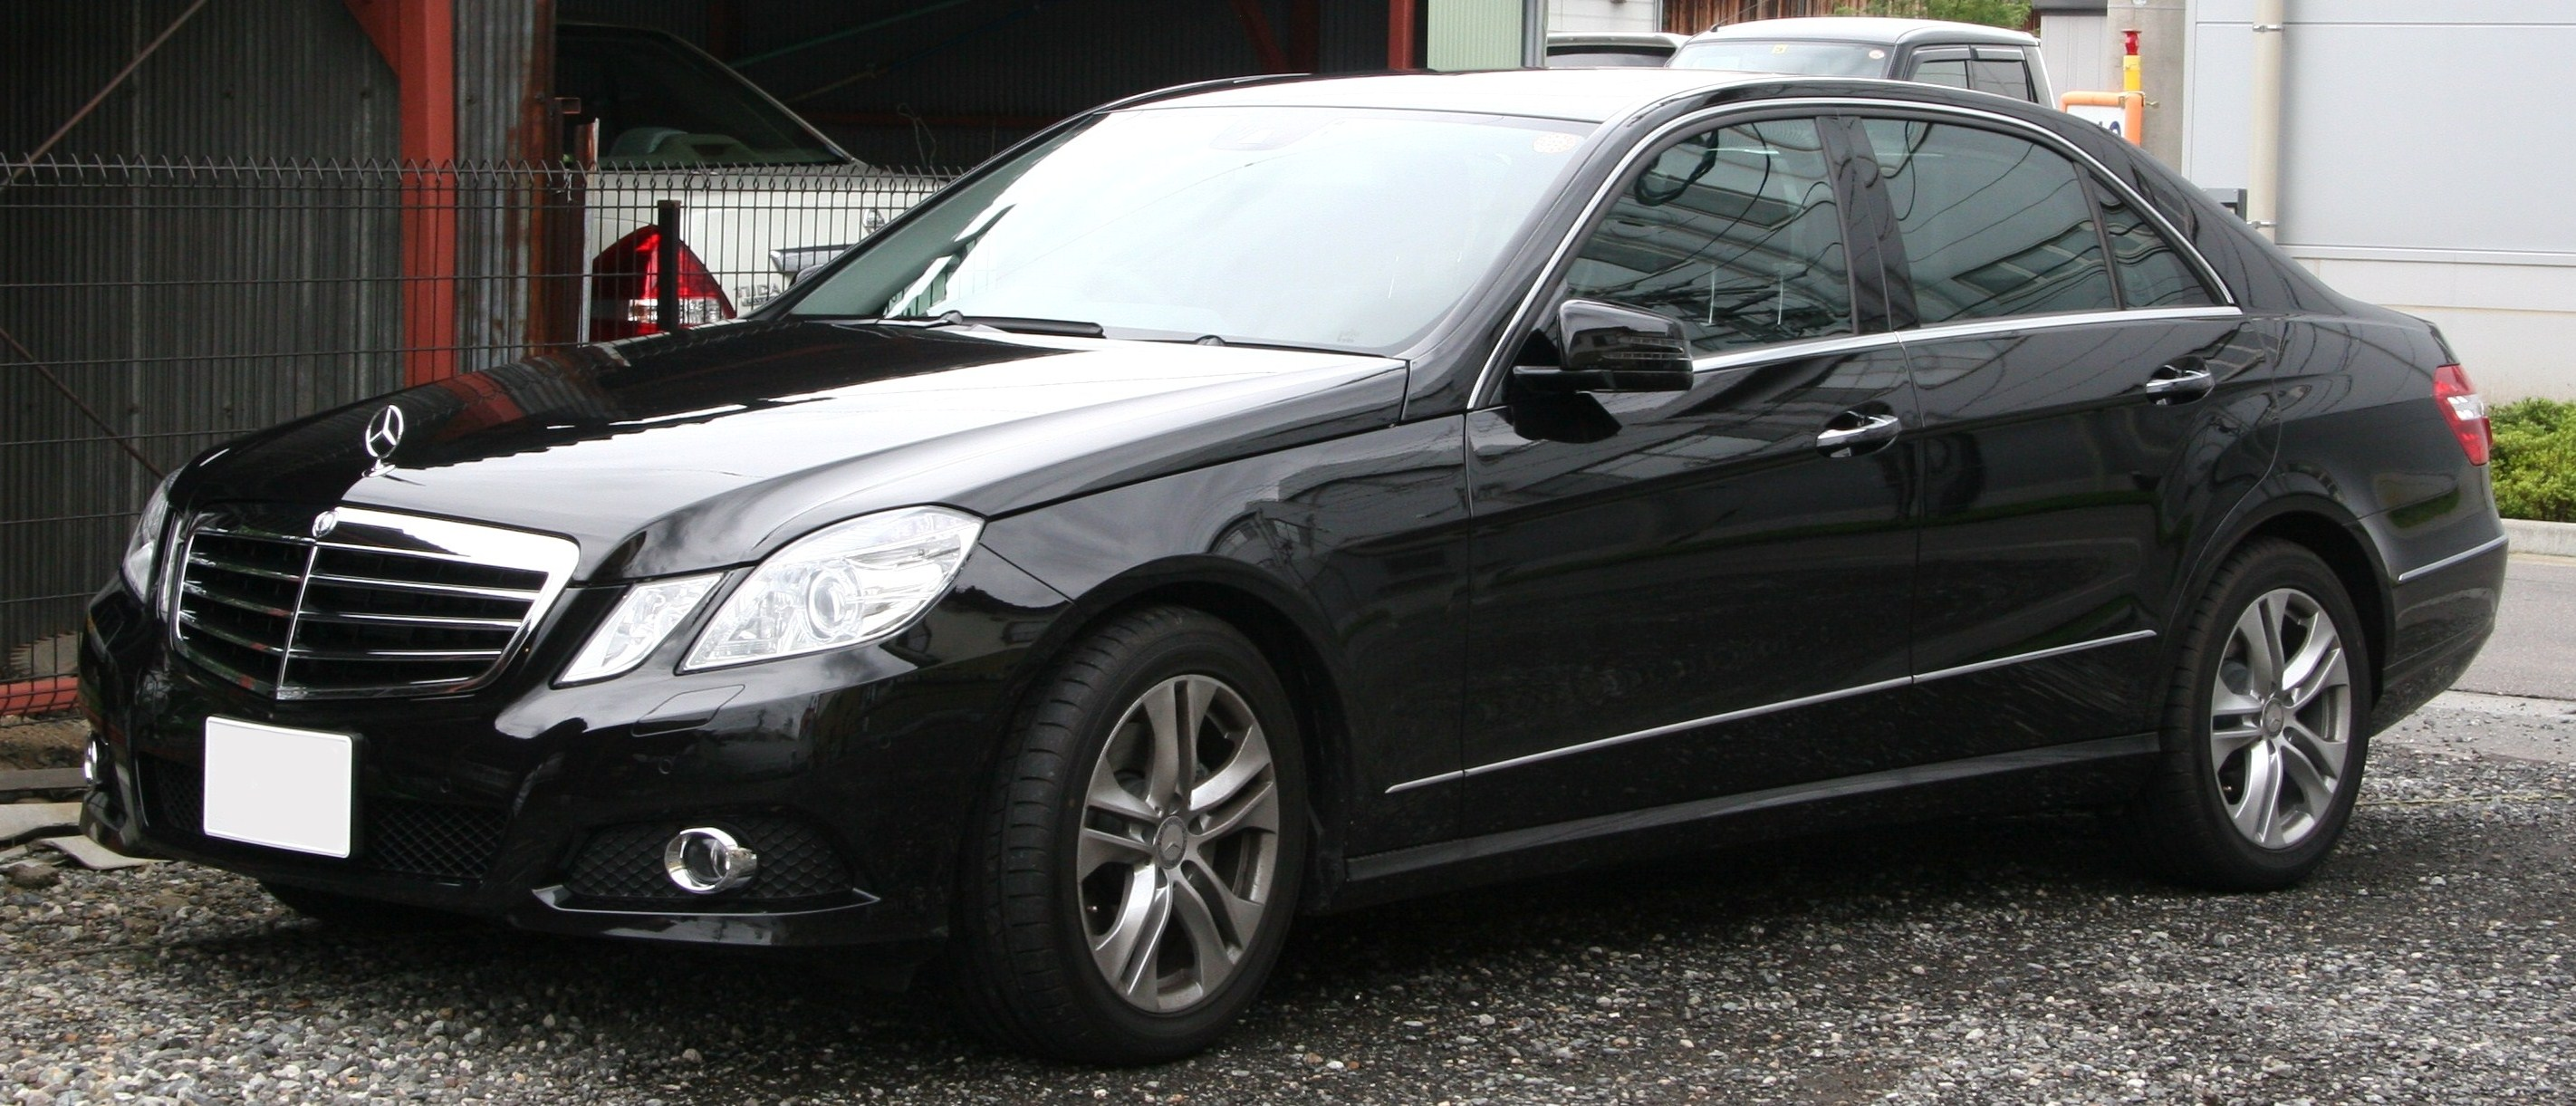 File Mercedes Benz E350 W212 Jpg Wikimedia Commons